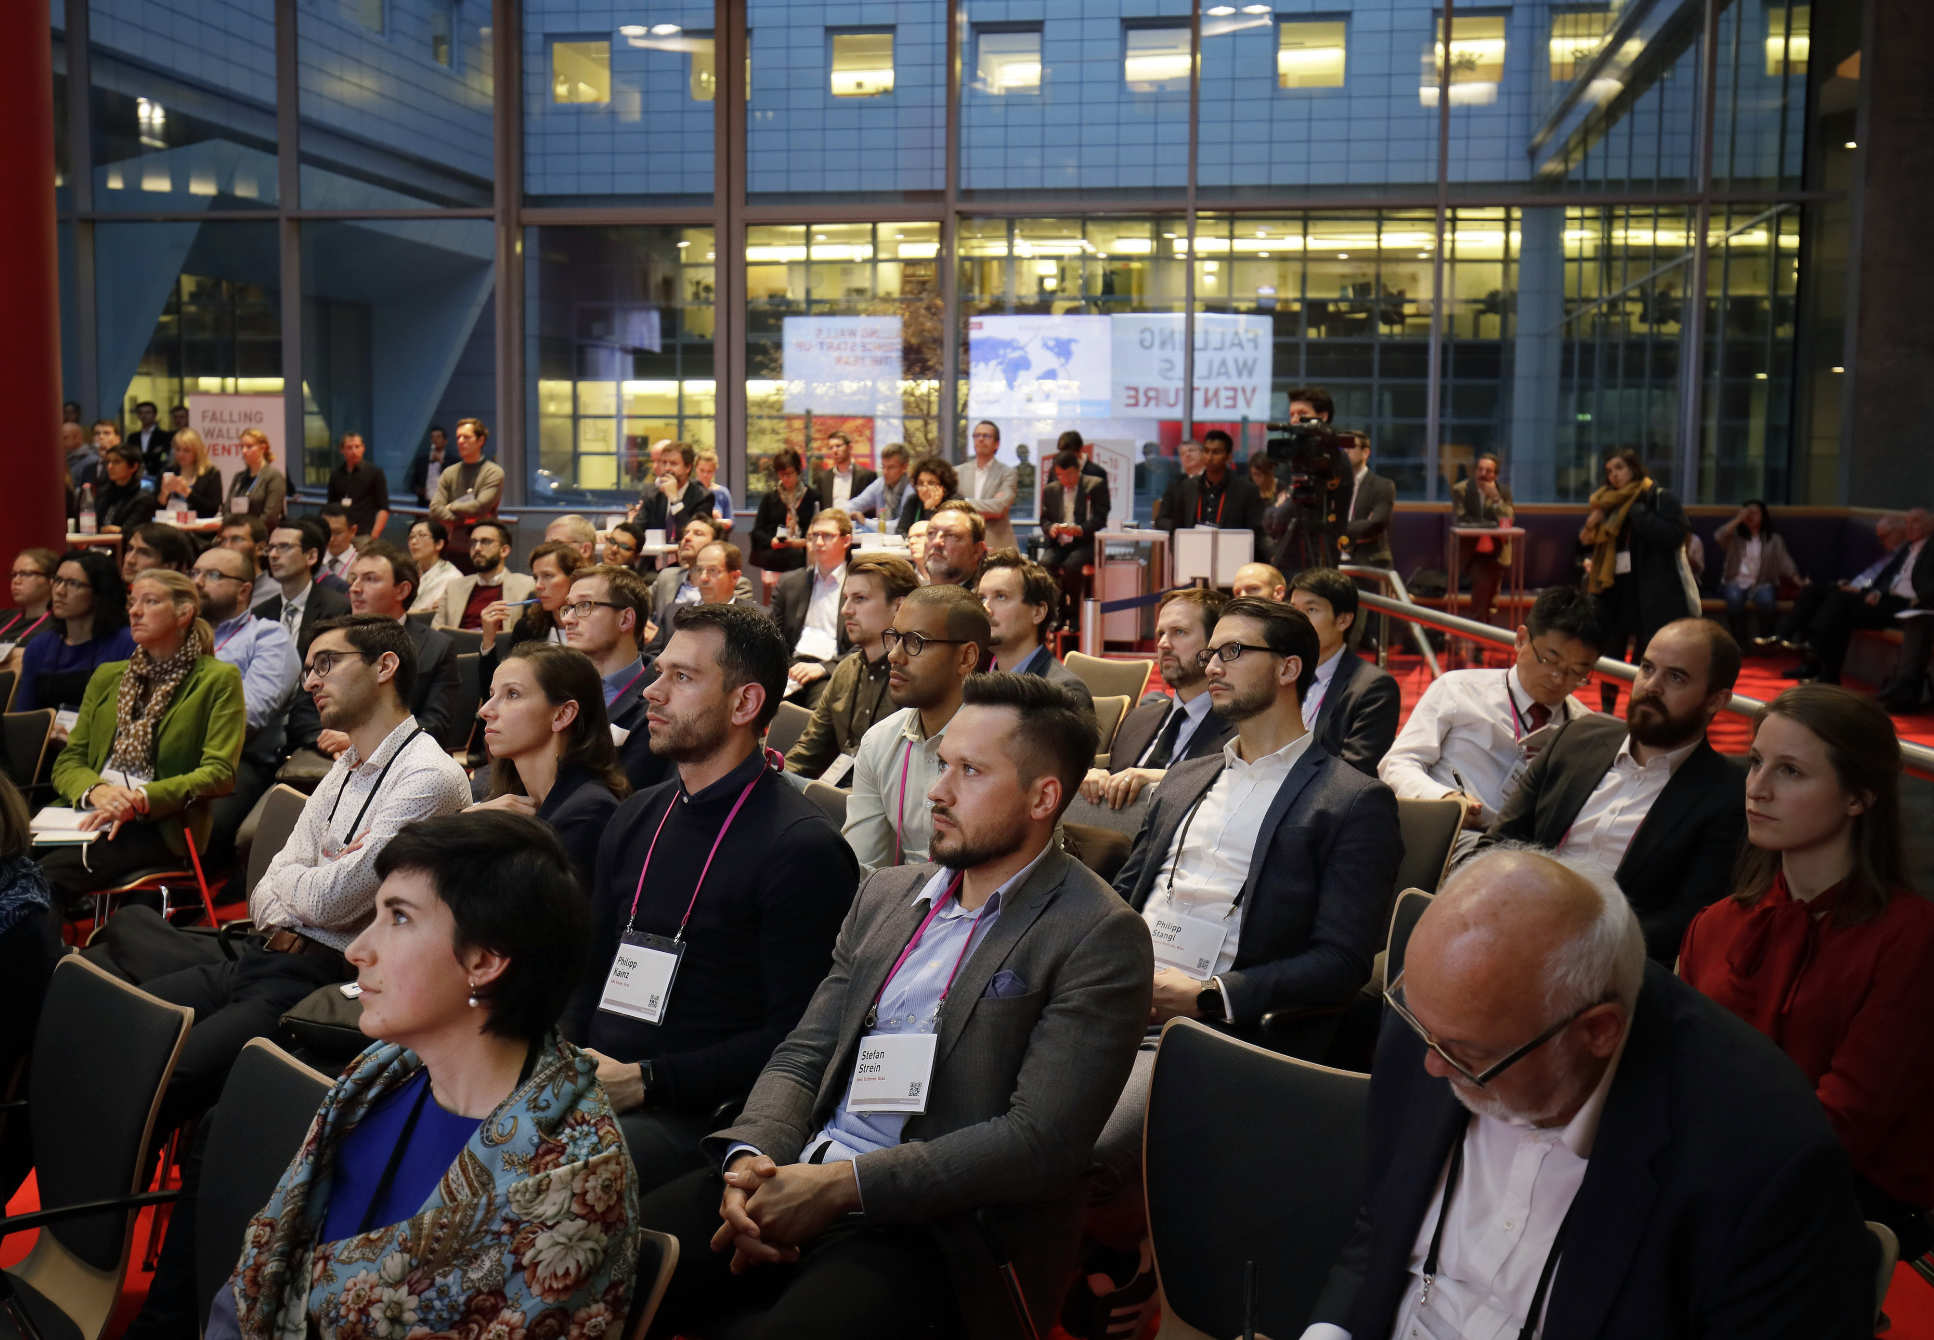 Falling Walls is attended by some of the world's leading scientists